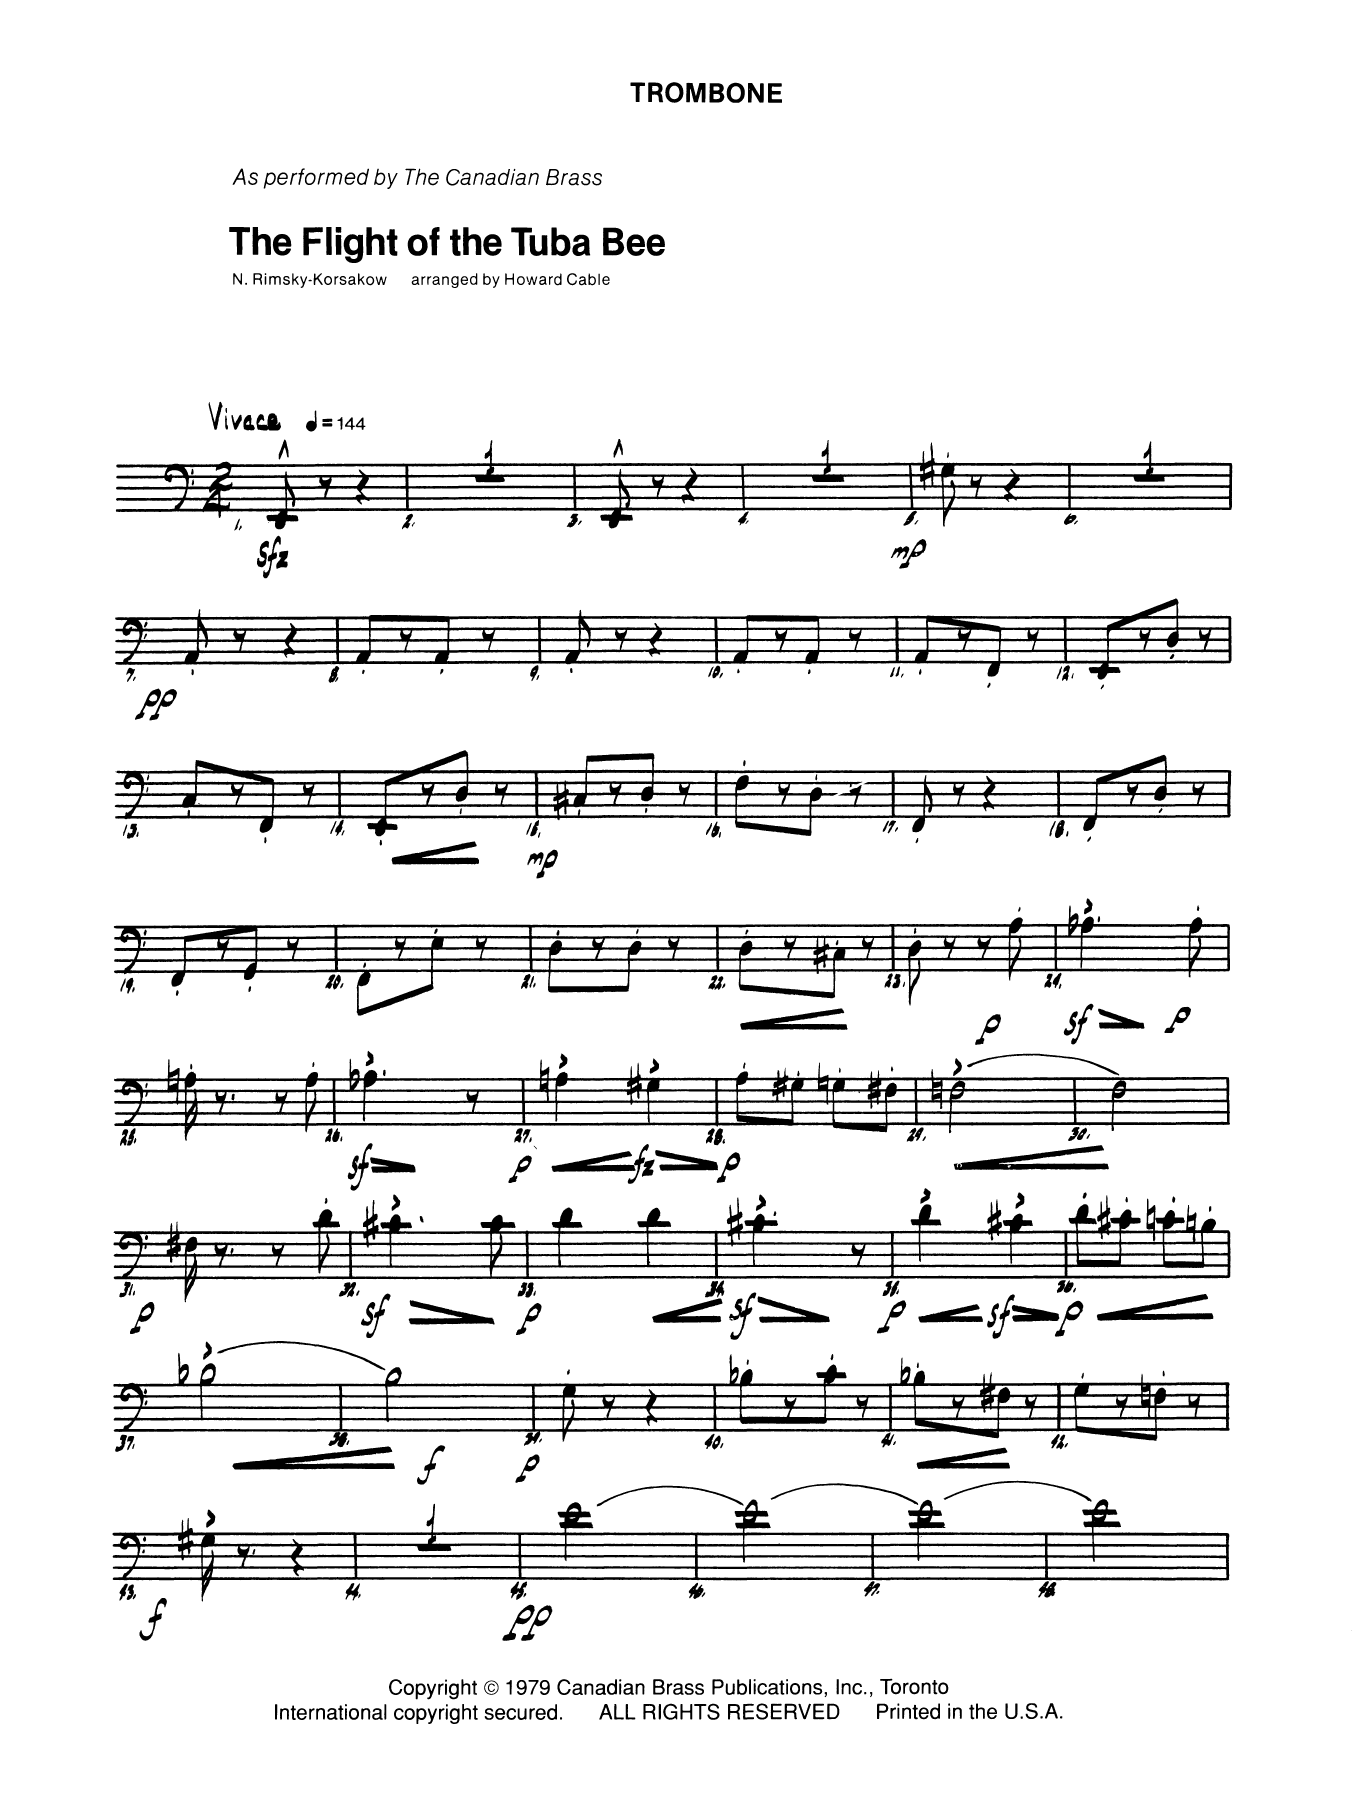 The Flight of the Tuba Bee - Trombone (B.C.) Partition Digitale